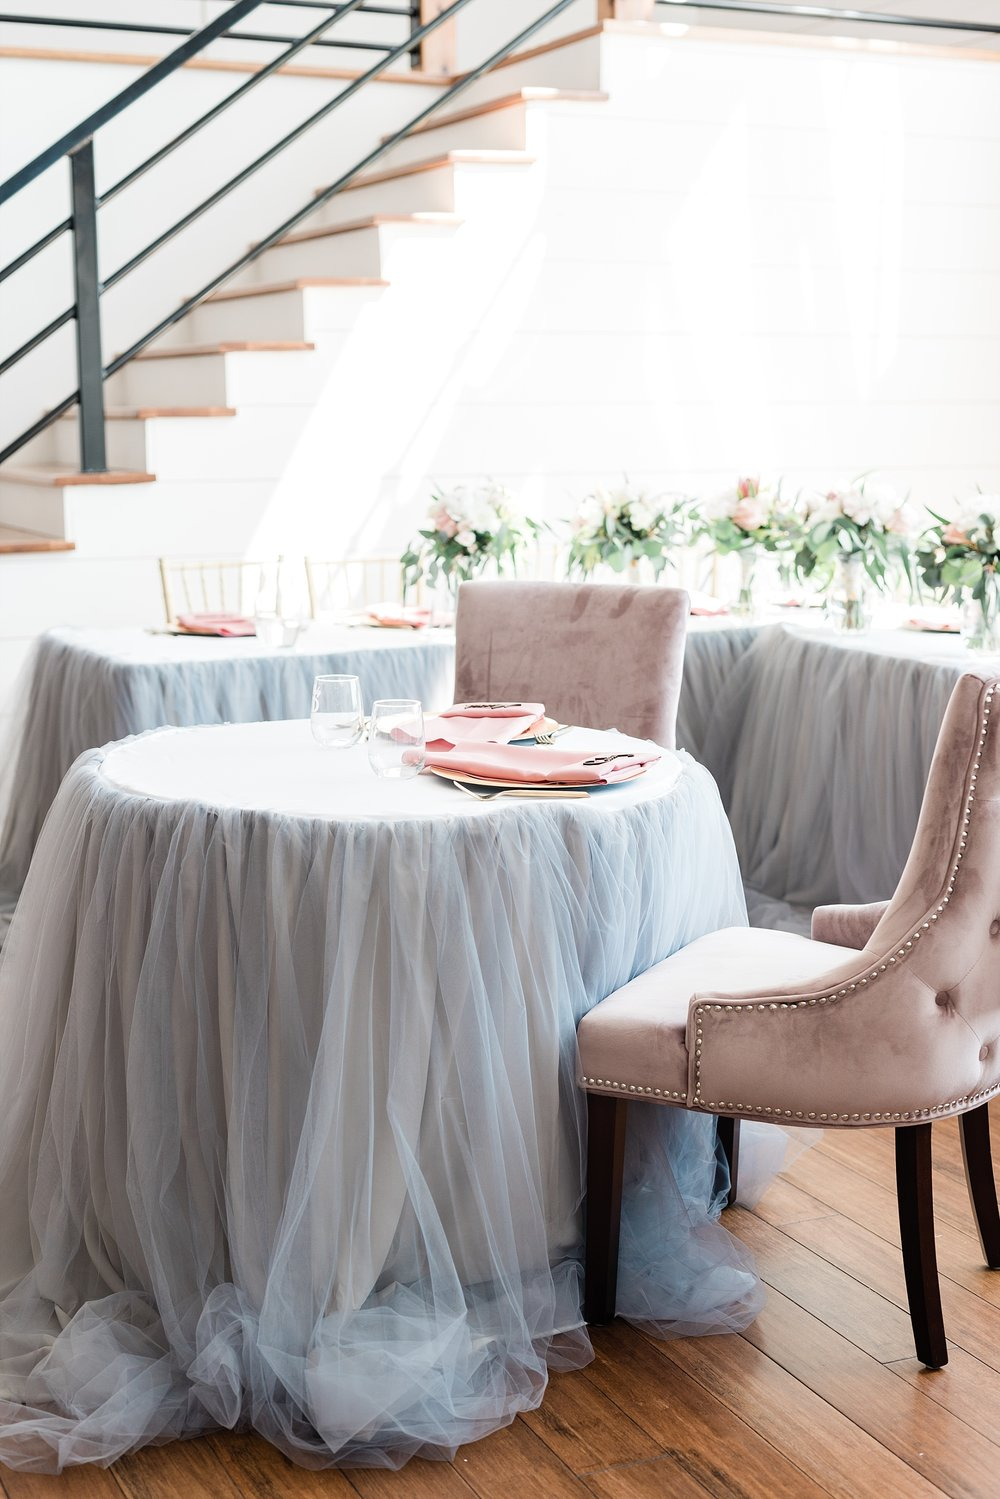 Stunning Heartfelt, Elegant, Fine Art, Chic, Outdoor Spring Wedding with Blush, Cream, Greenery, Rose Gold, and Sequins at Emerson Fields Venue by Kelsi Kliethermes Photography_0037.jpg